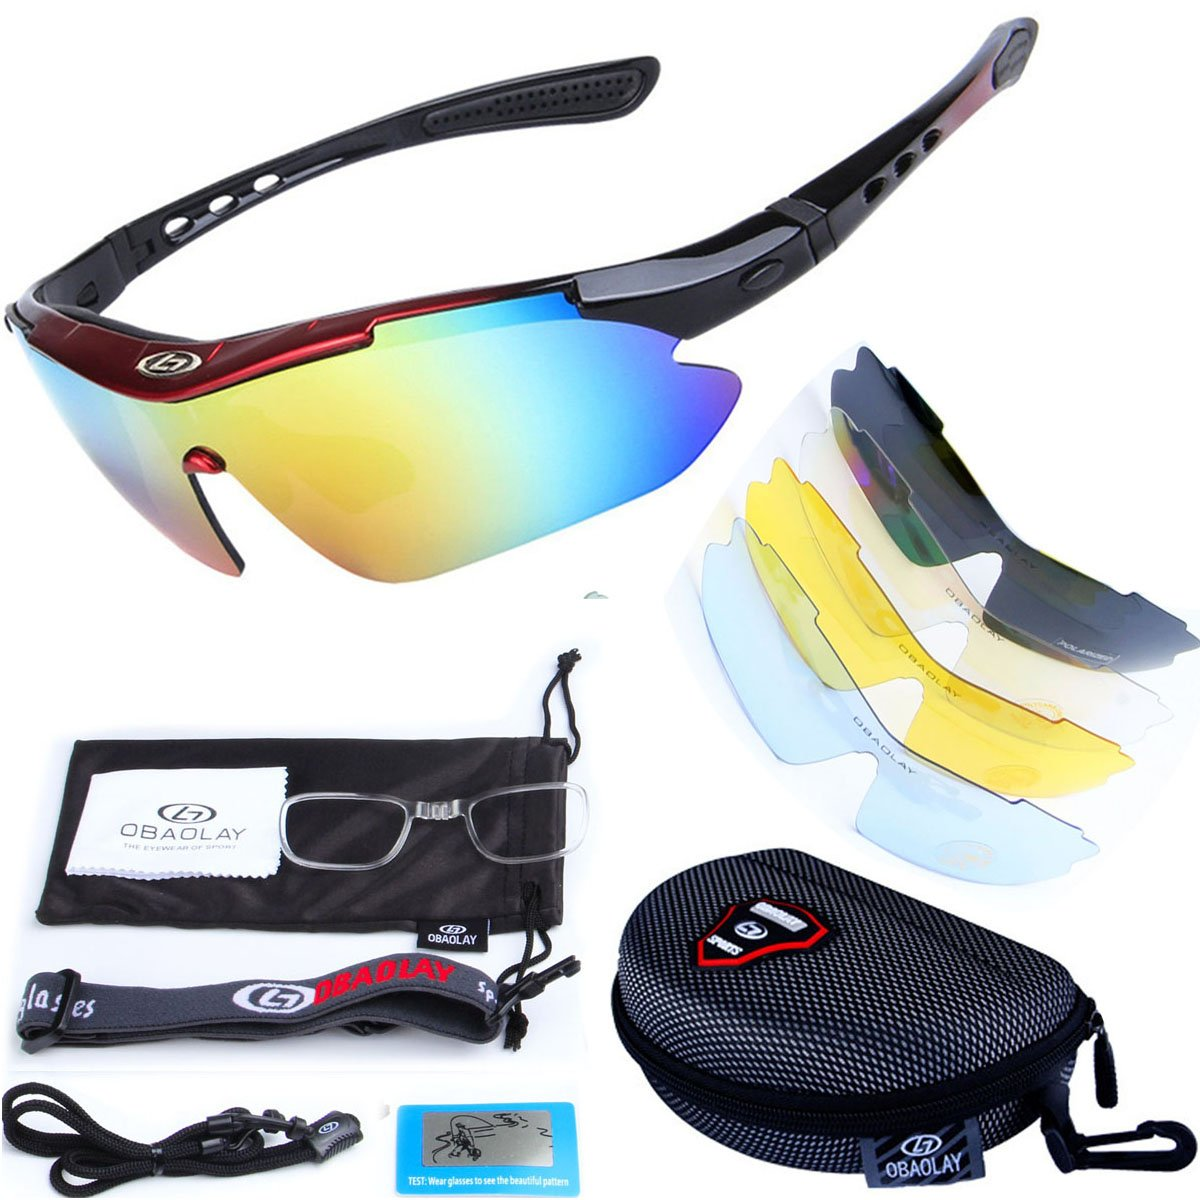 Tutoo Polarized Sports Sunglasses With 5 Interchangeable Lenses for Men Women (red&black)